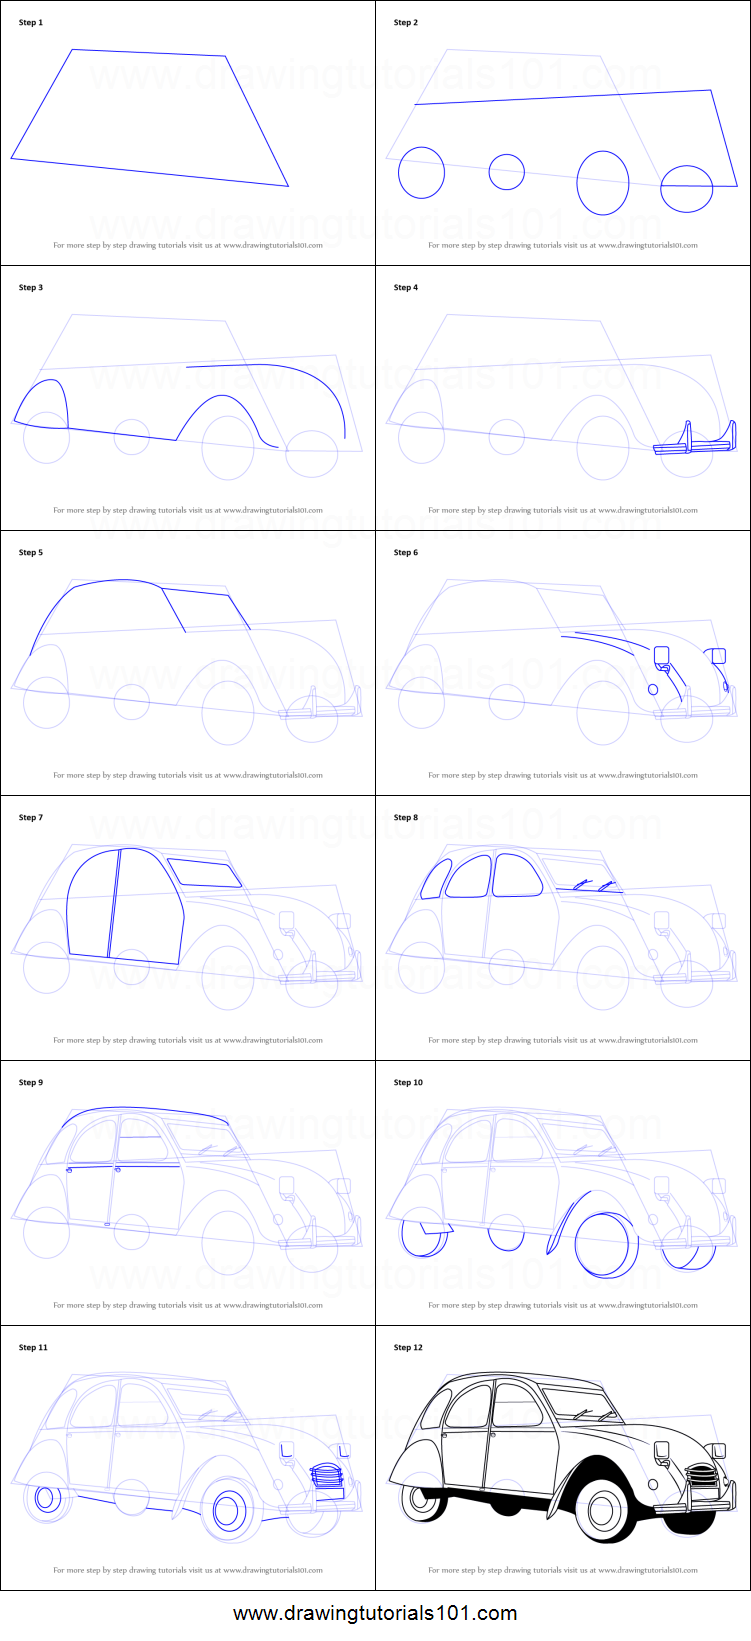 How To Draw A Vintage Car Printable Step By Step Drawing